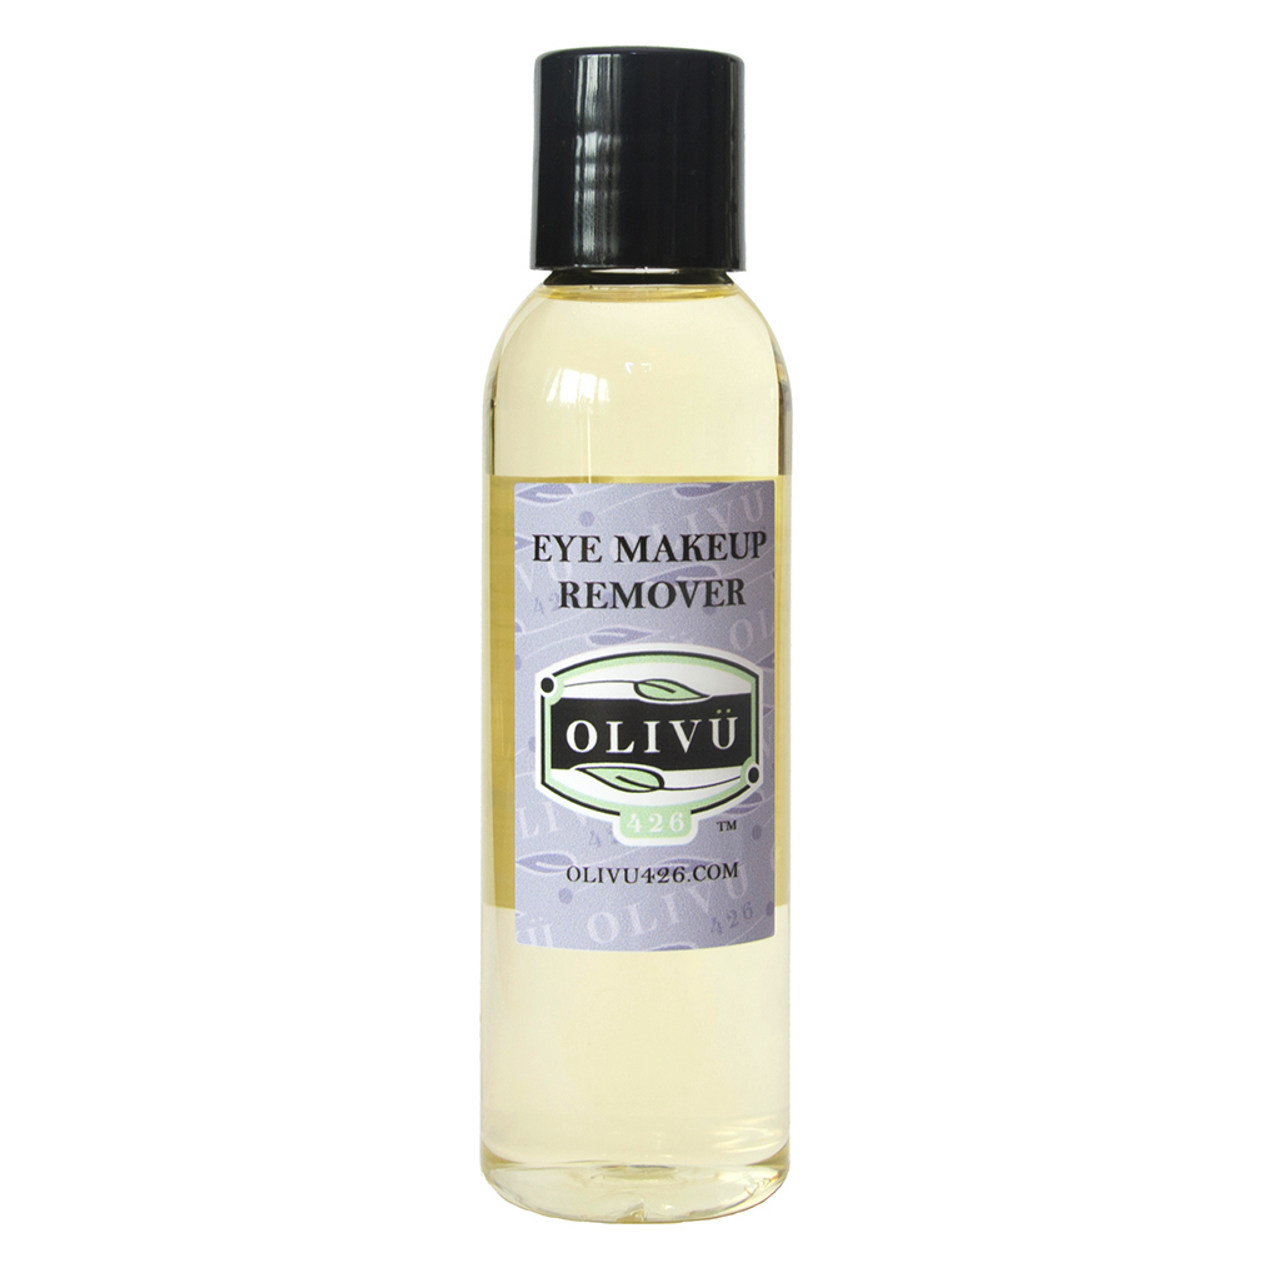 Eye Makeup Remover - Olivu 426